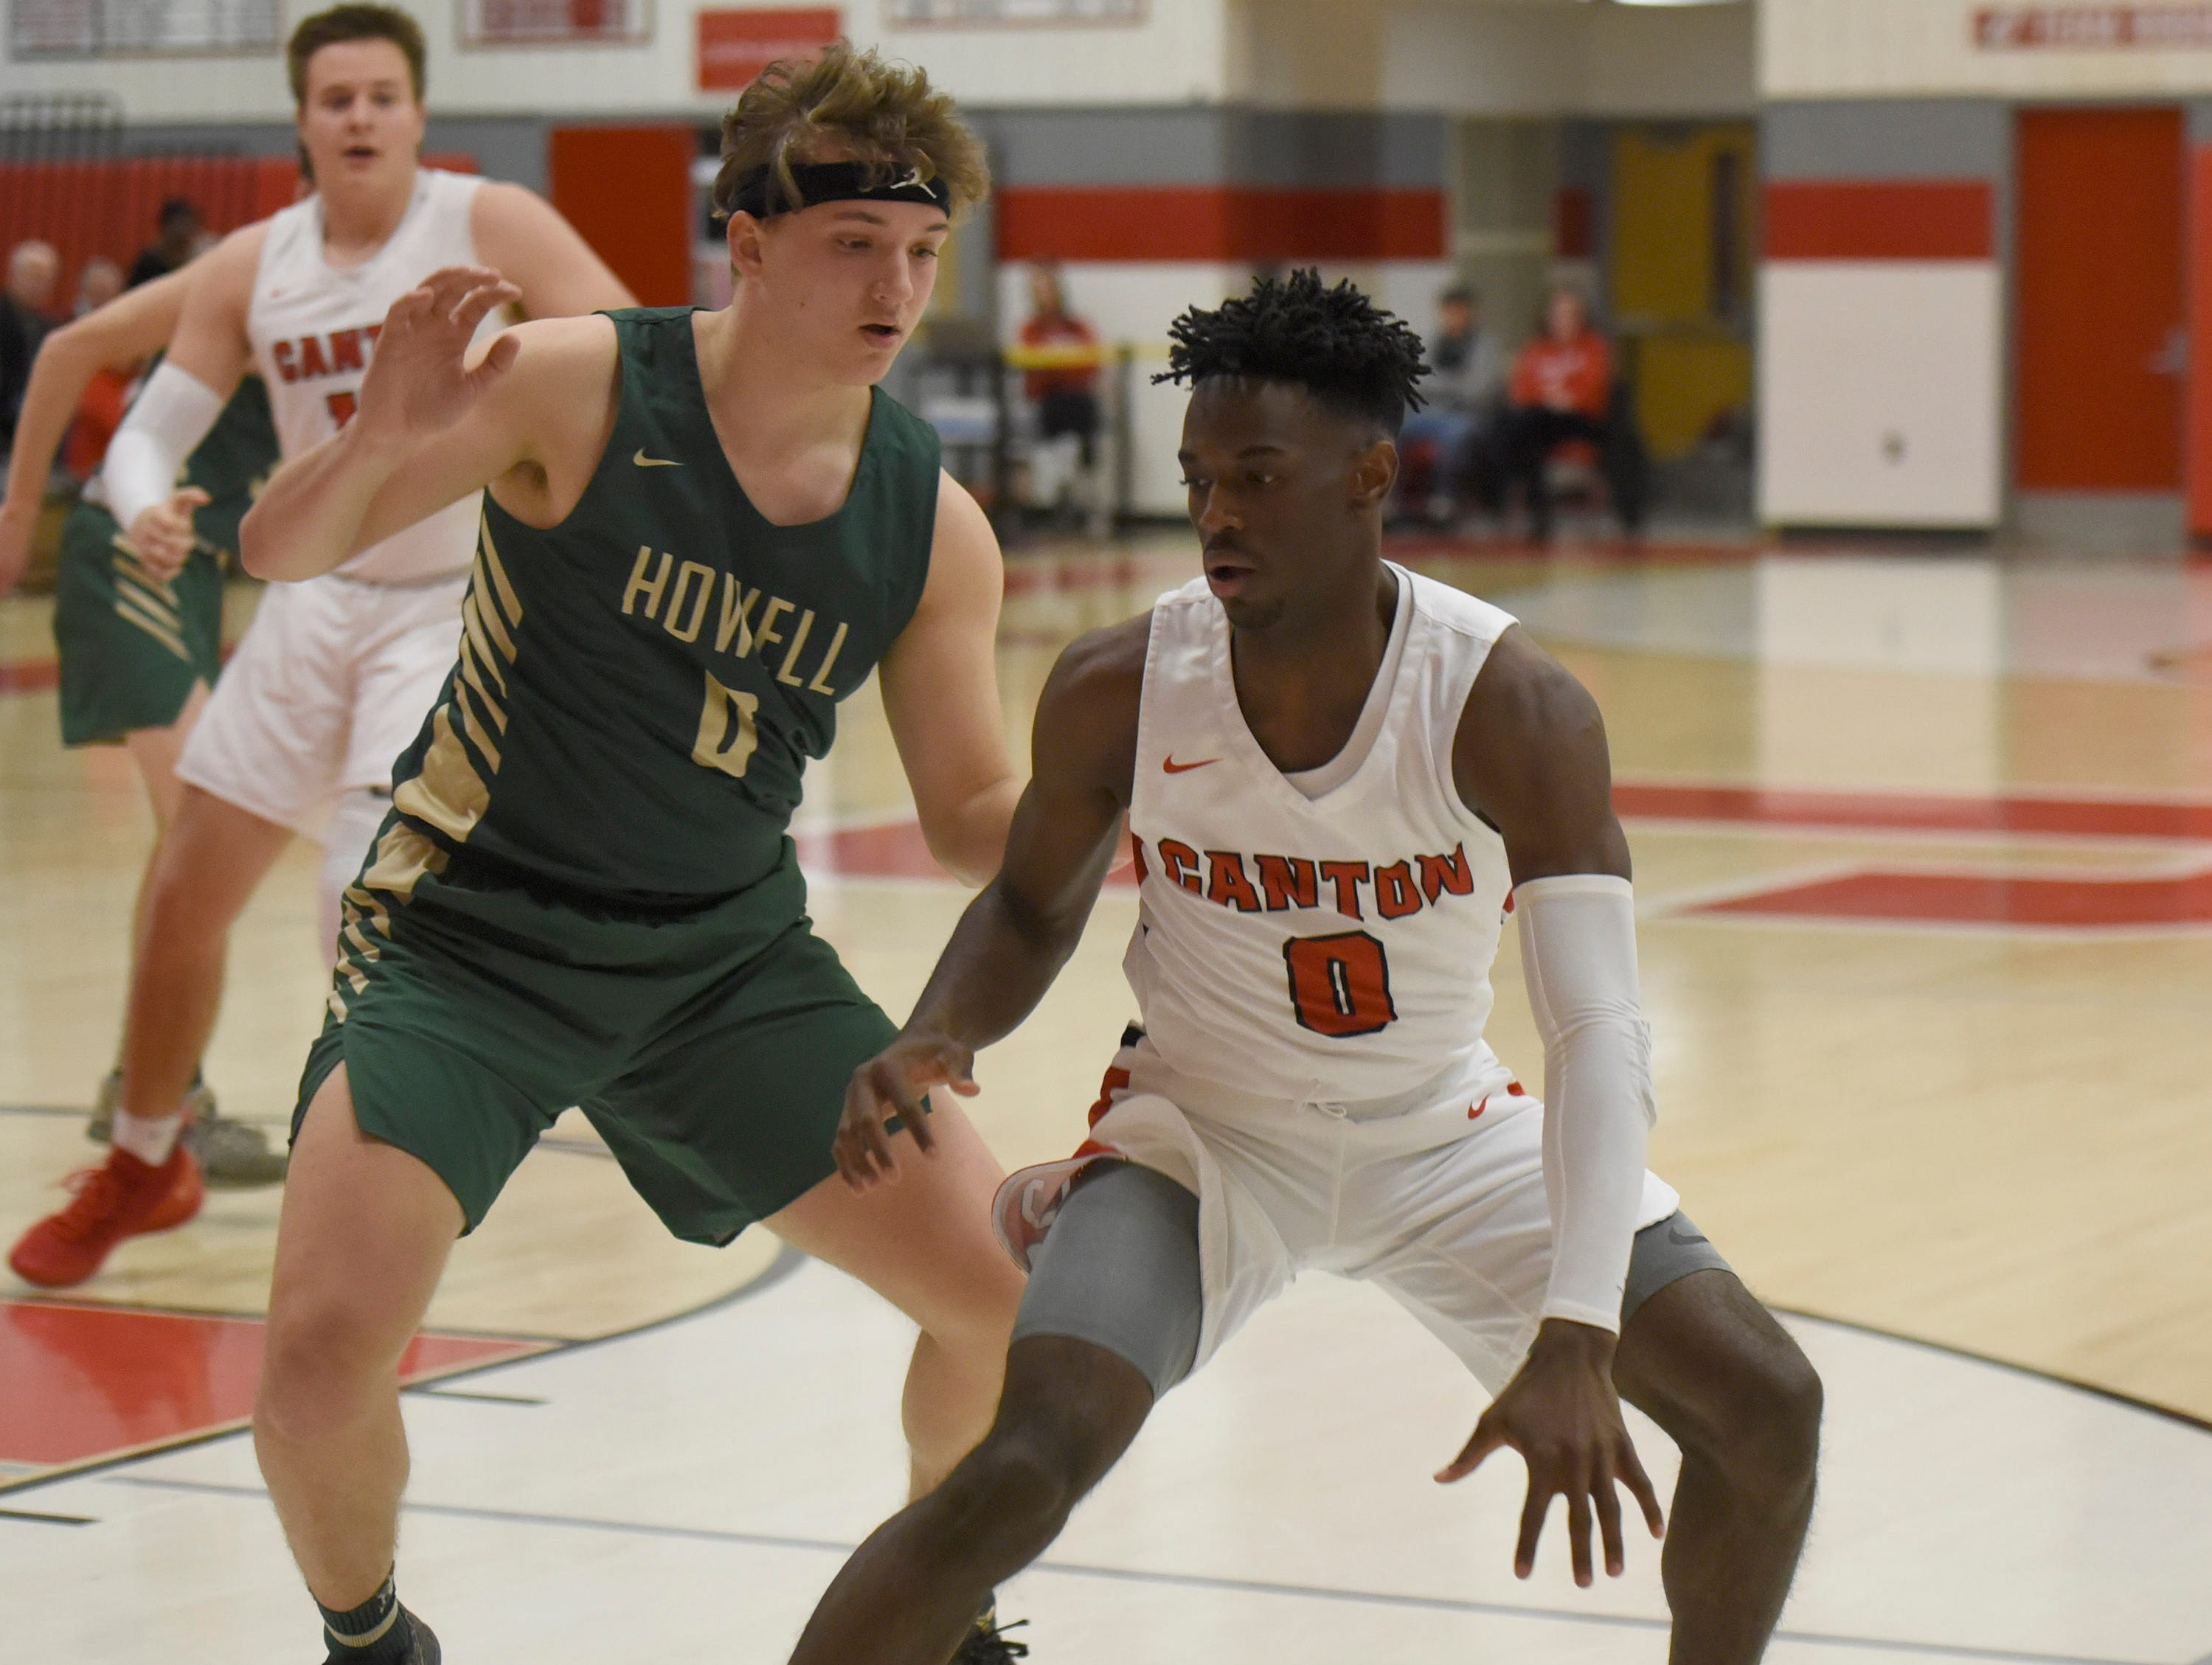 Howell's Josh Palo (0) and Canton's Vinson Sigmon (0) during a KLAA match up played at Canton Jan. 15, 2019